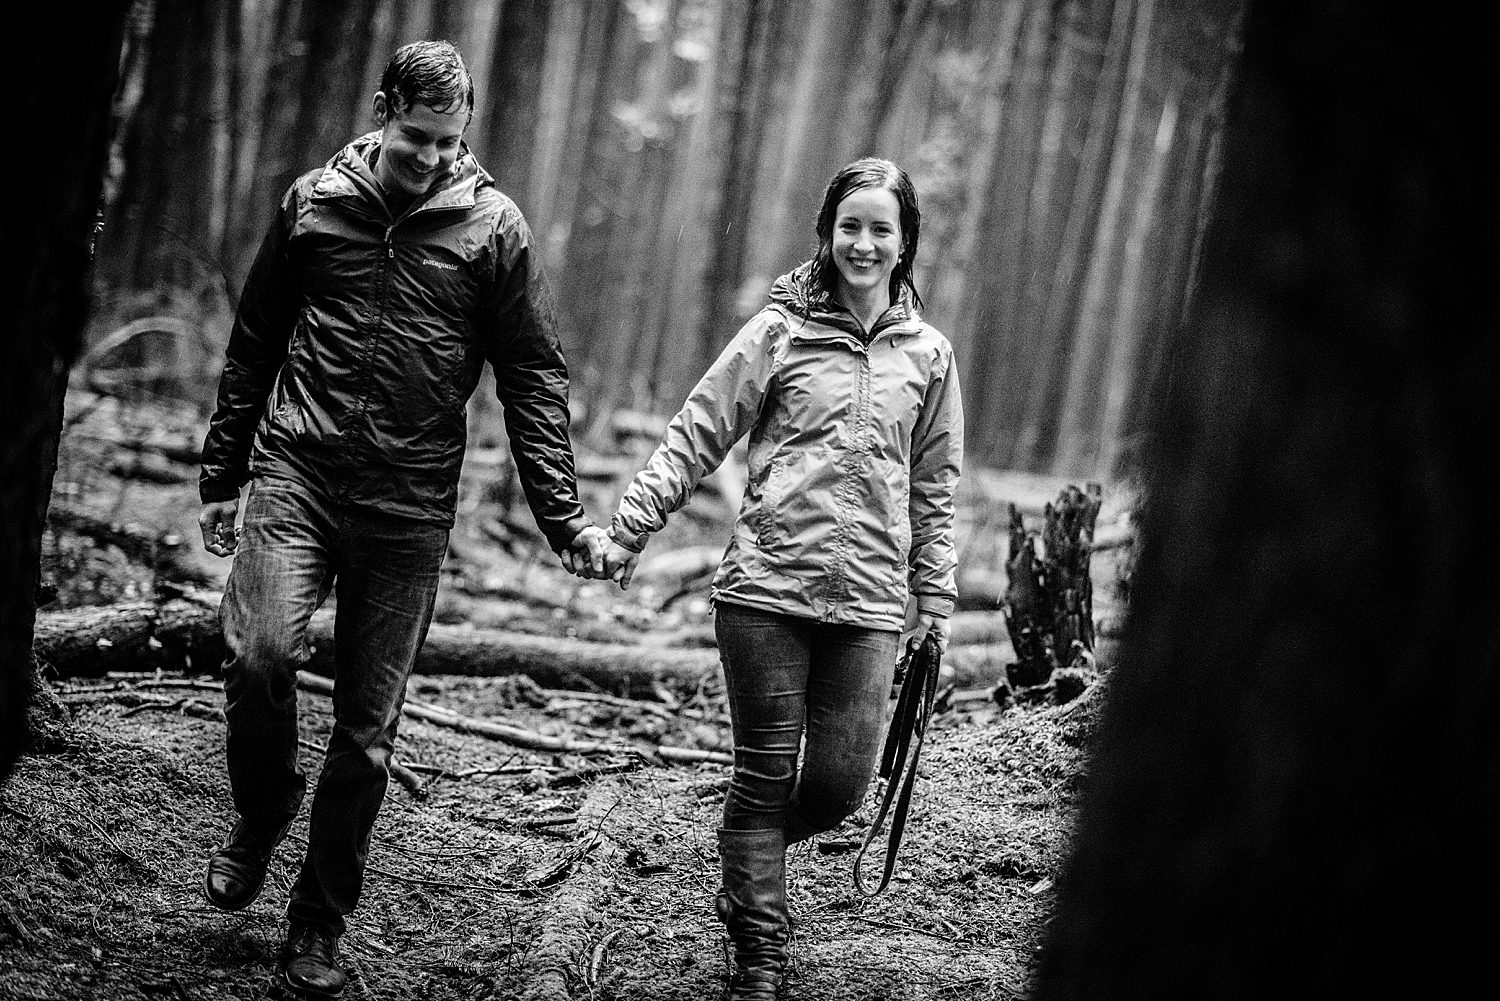 british columbia - pacific spirit park - engagement shoot - vancouver b.c.- maylies lang photography -25.jpg